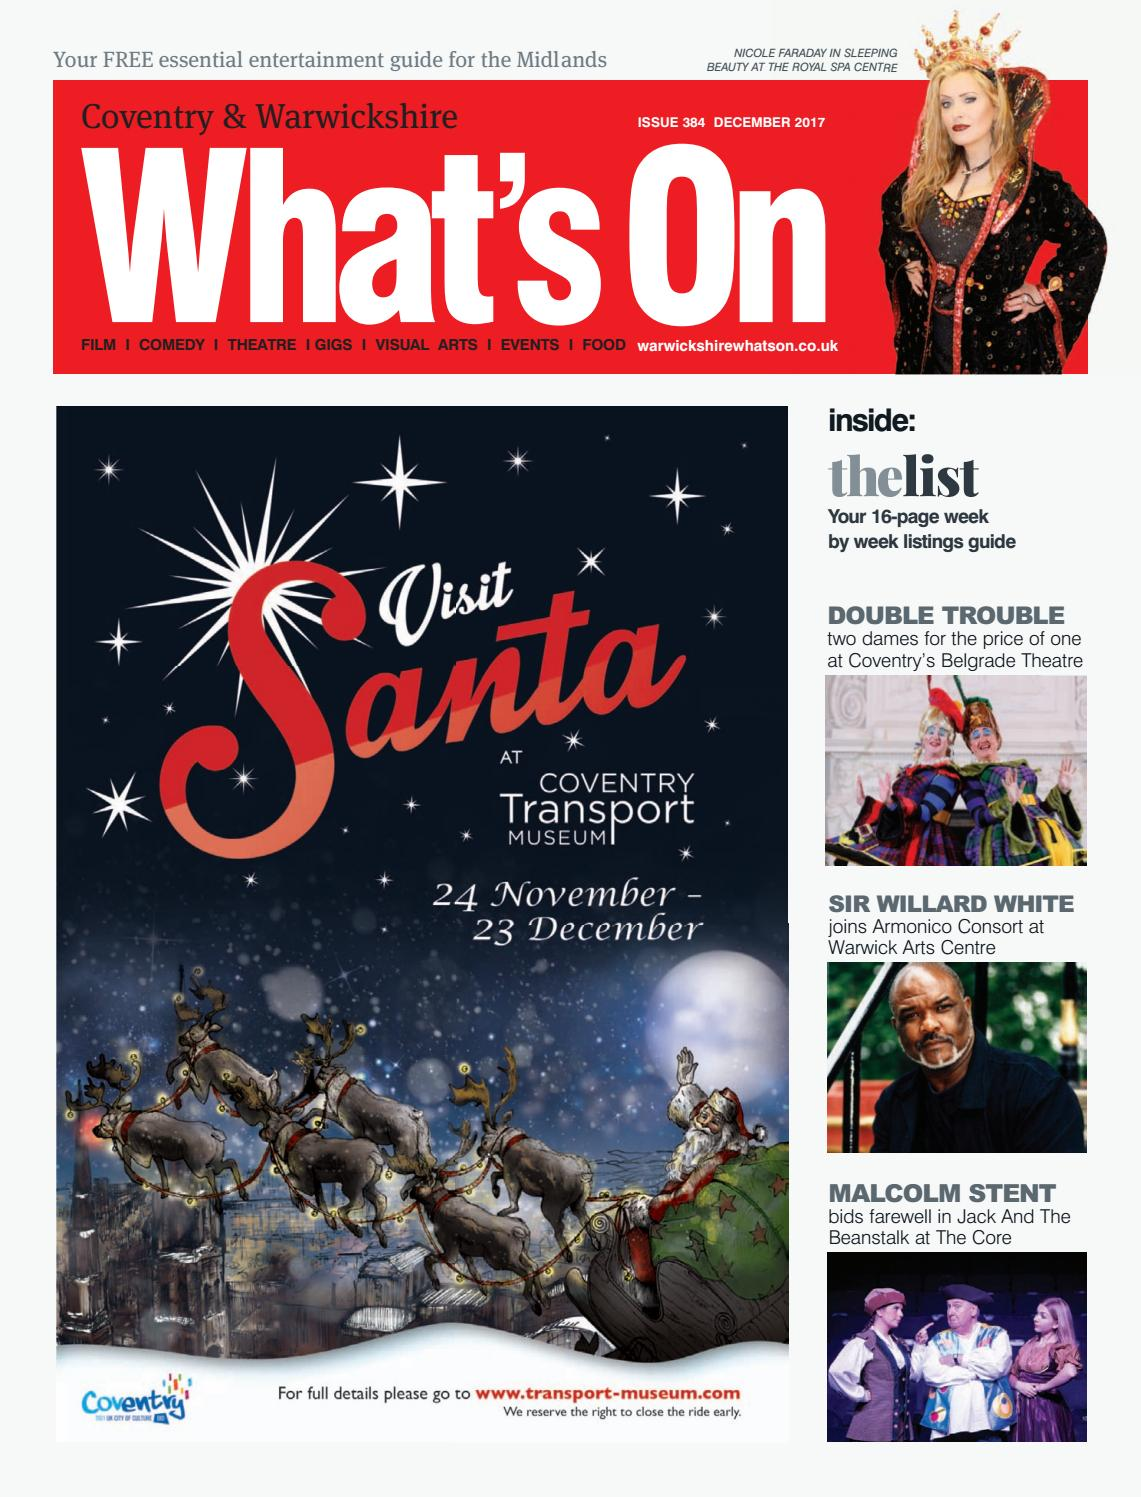 Coventry & Warwickshire What's On December 2017